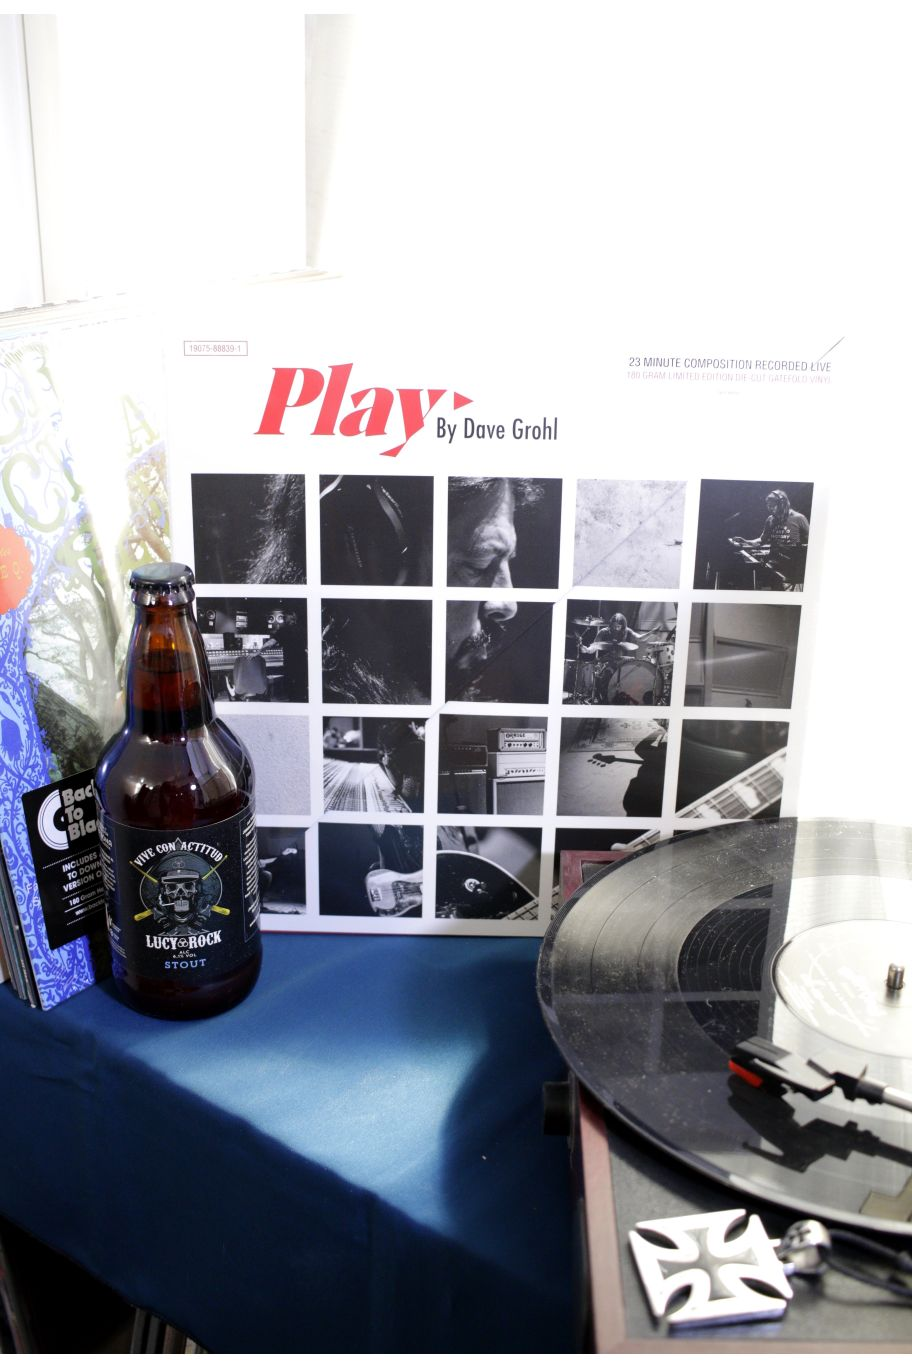 VINILO DAVE GROHL PLAY